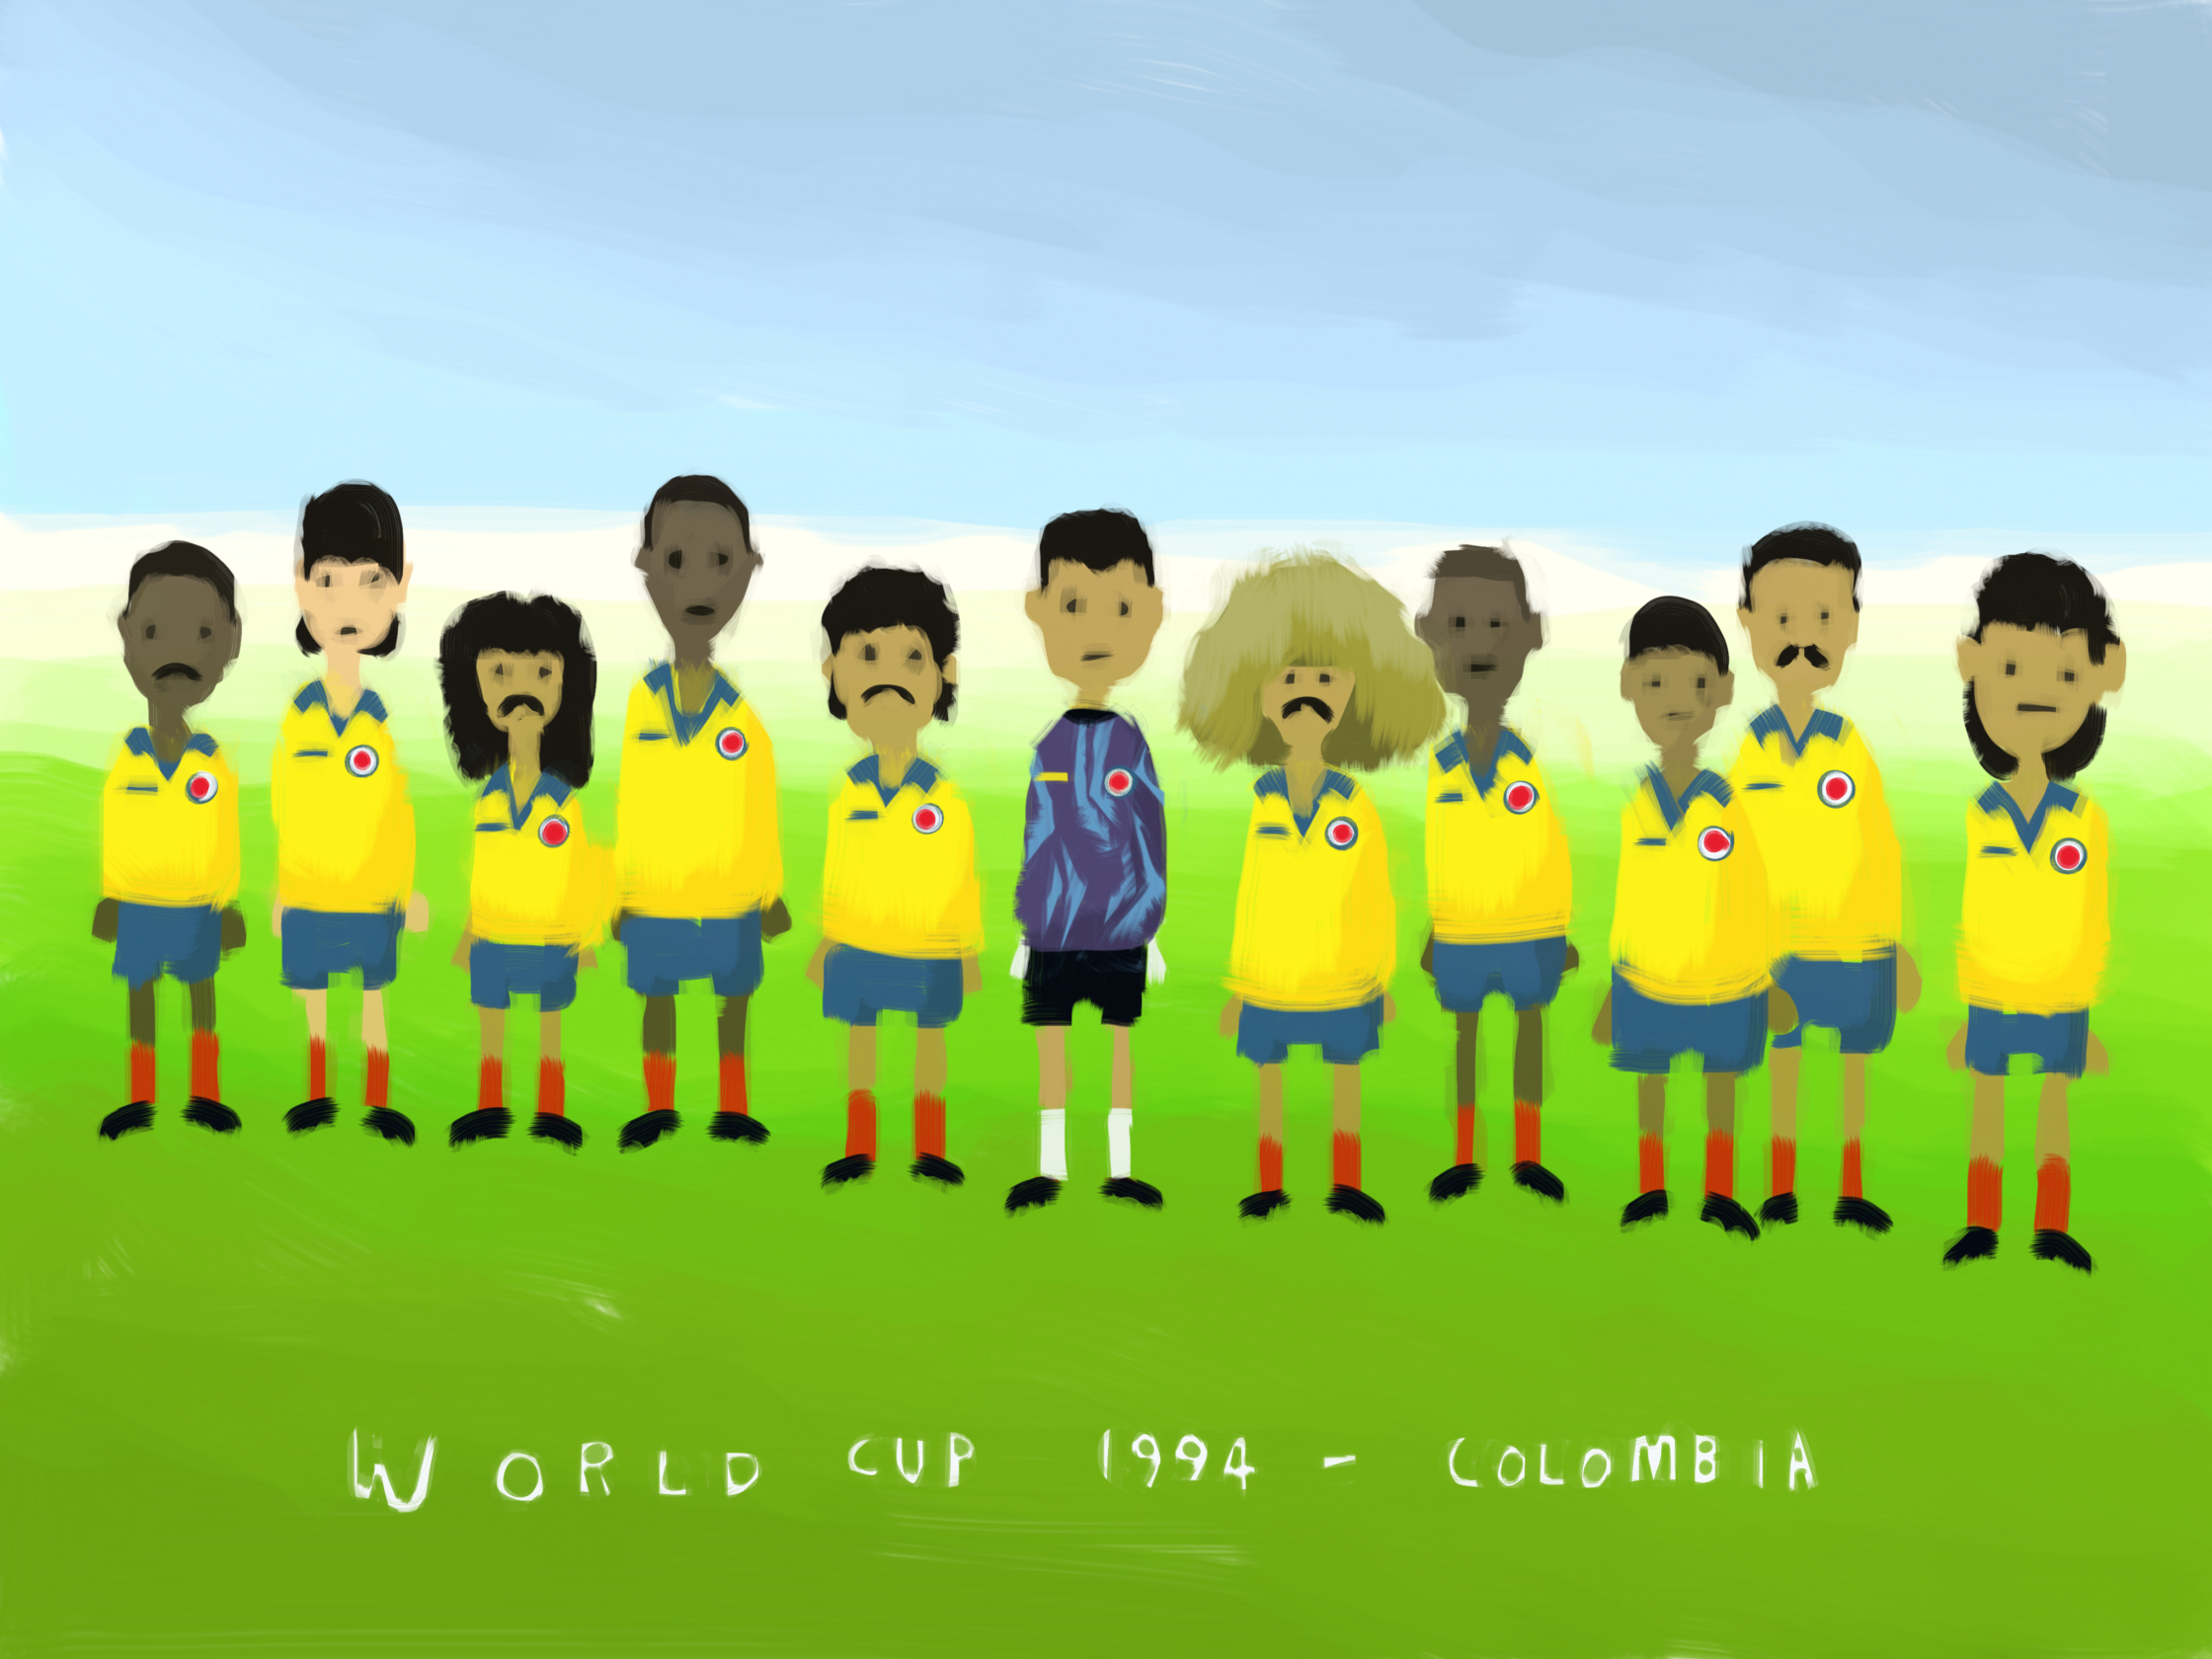 Columbia World Cup 1994